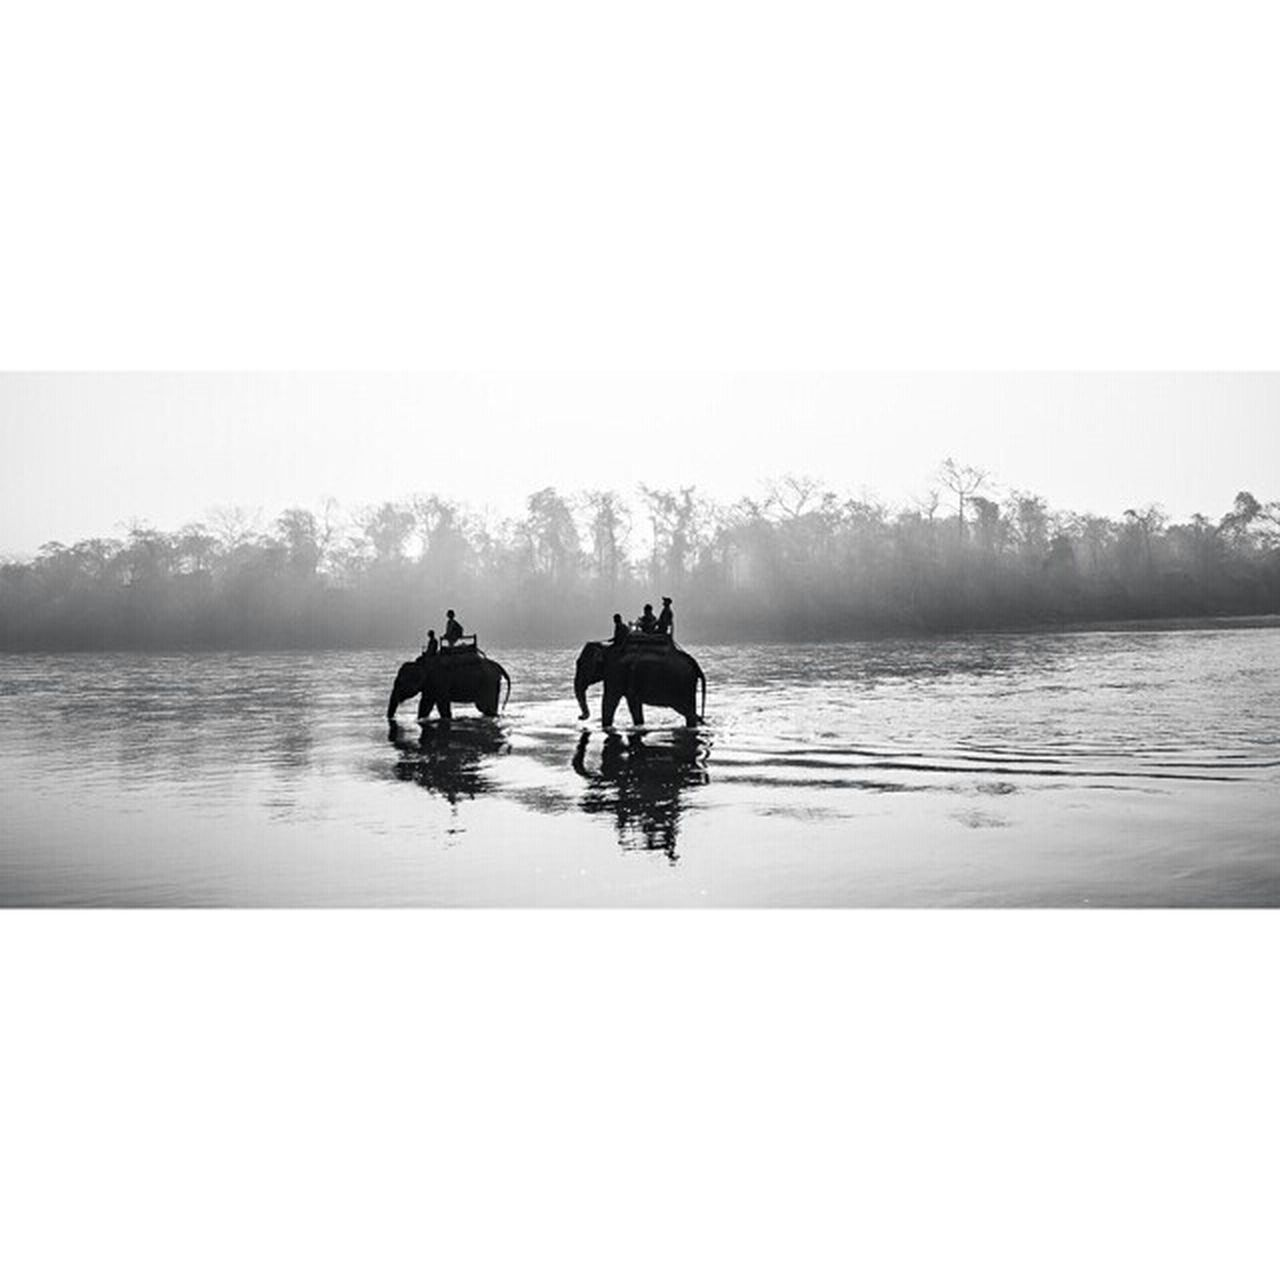 Blackandwhite Elephant ♥ Elephantride Elephant Lover ♡ Humainsbestfriend River View Popular Eyem Nature Lover Nepal♥